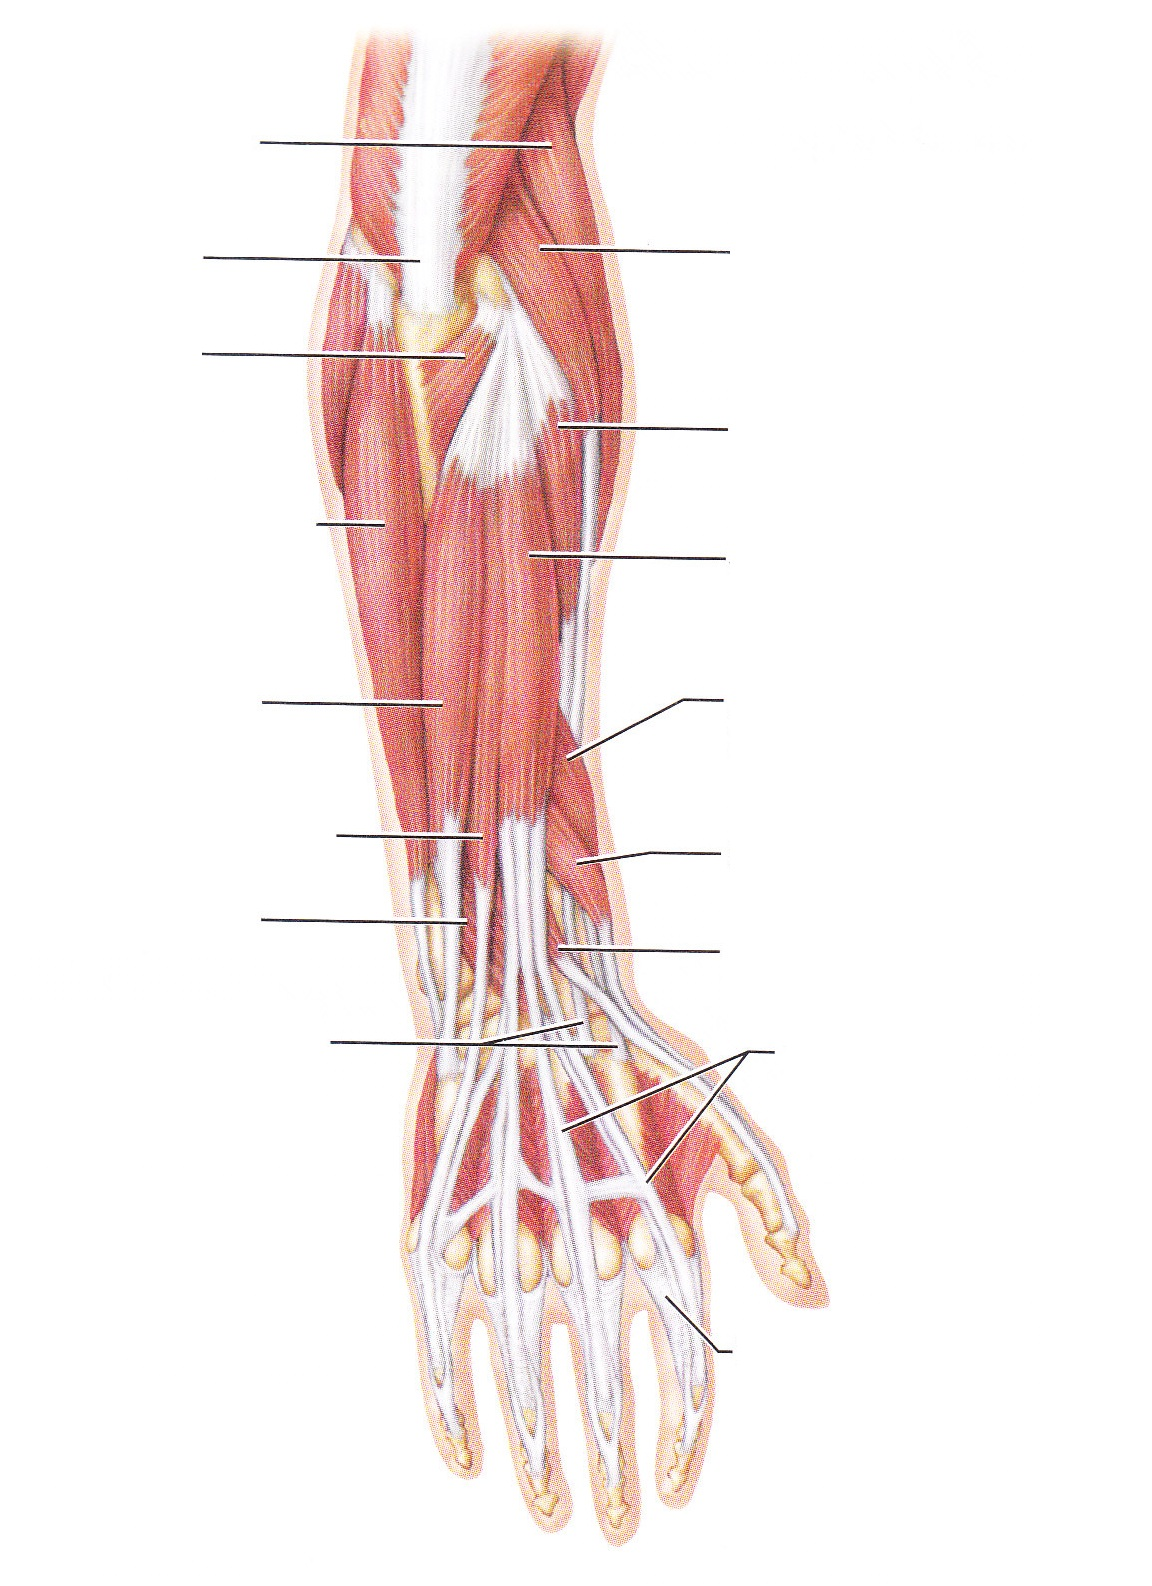 diagram of shoulder muscles and tendons  diagram  free